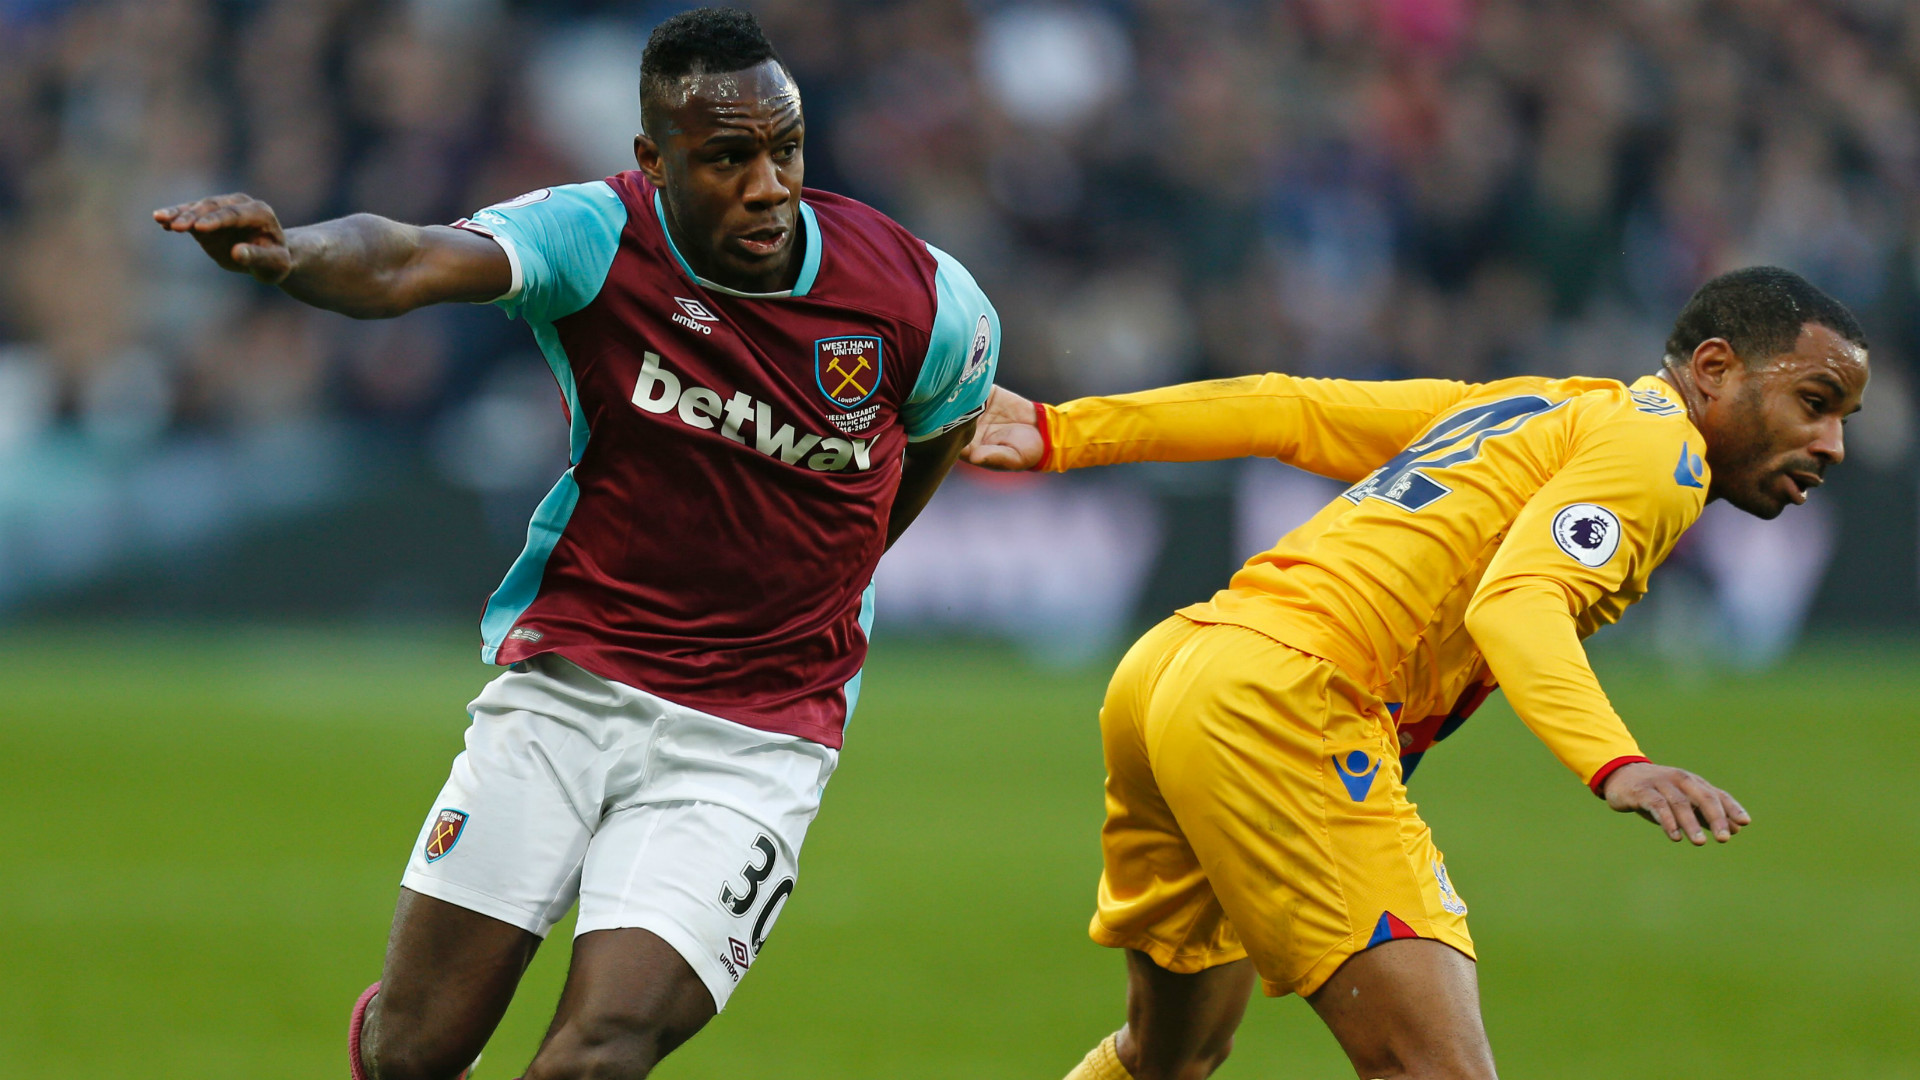 West Ham Fans React to Dimitri Payet's Refusal to Play